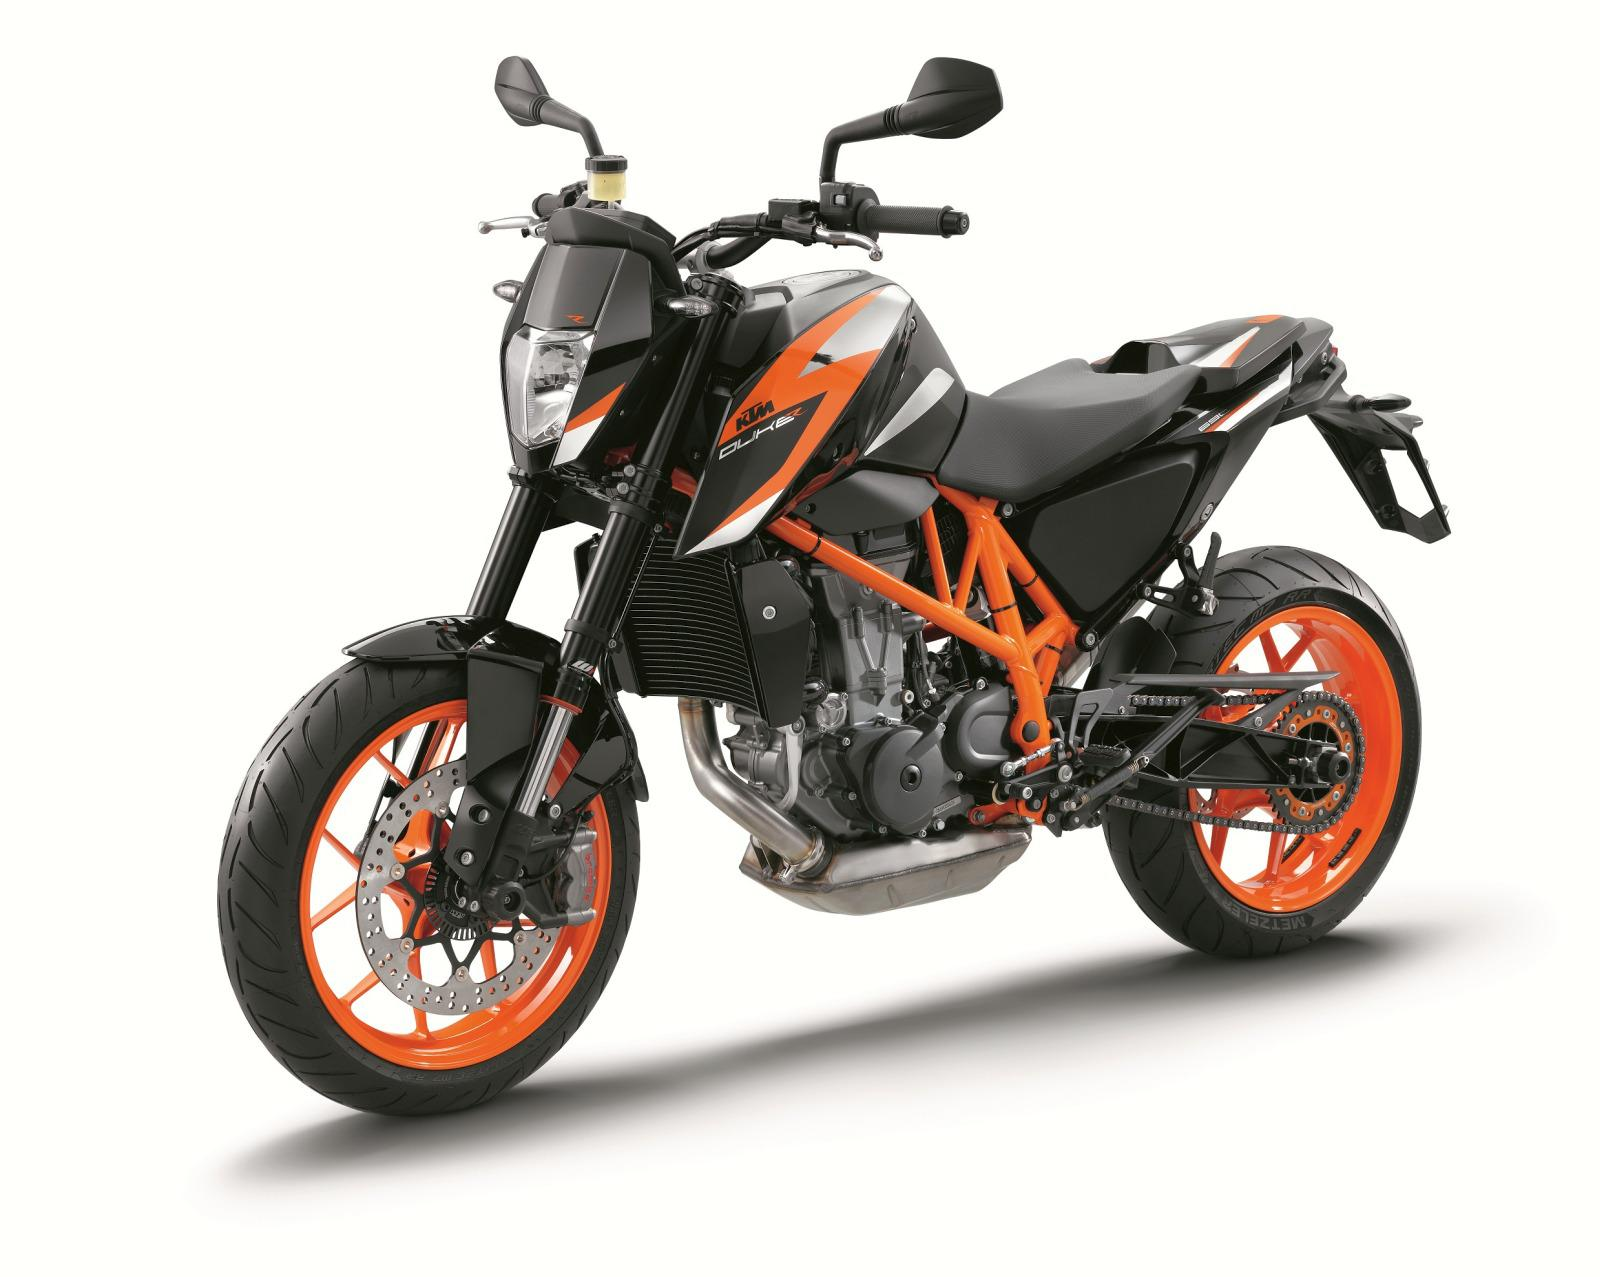 ktm 690 duke r 2016 motorrad fotos motorrad bilder. Black Bedroom Furniture Sets. Home Design Ideas